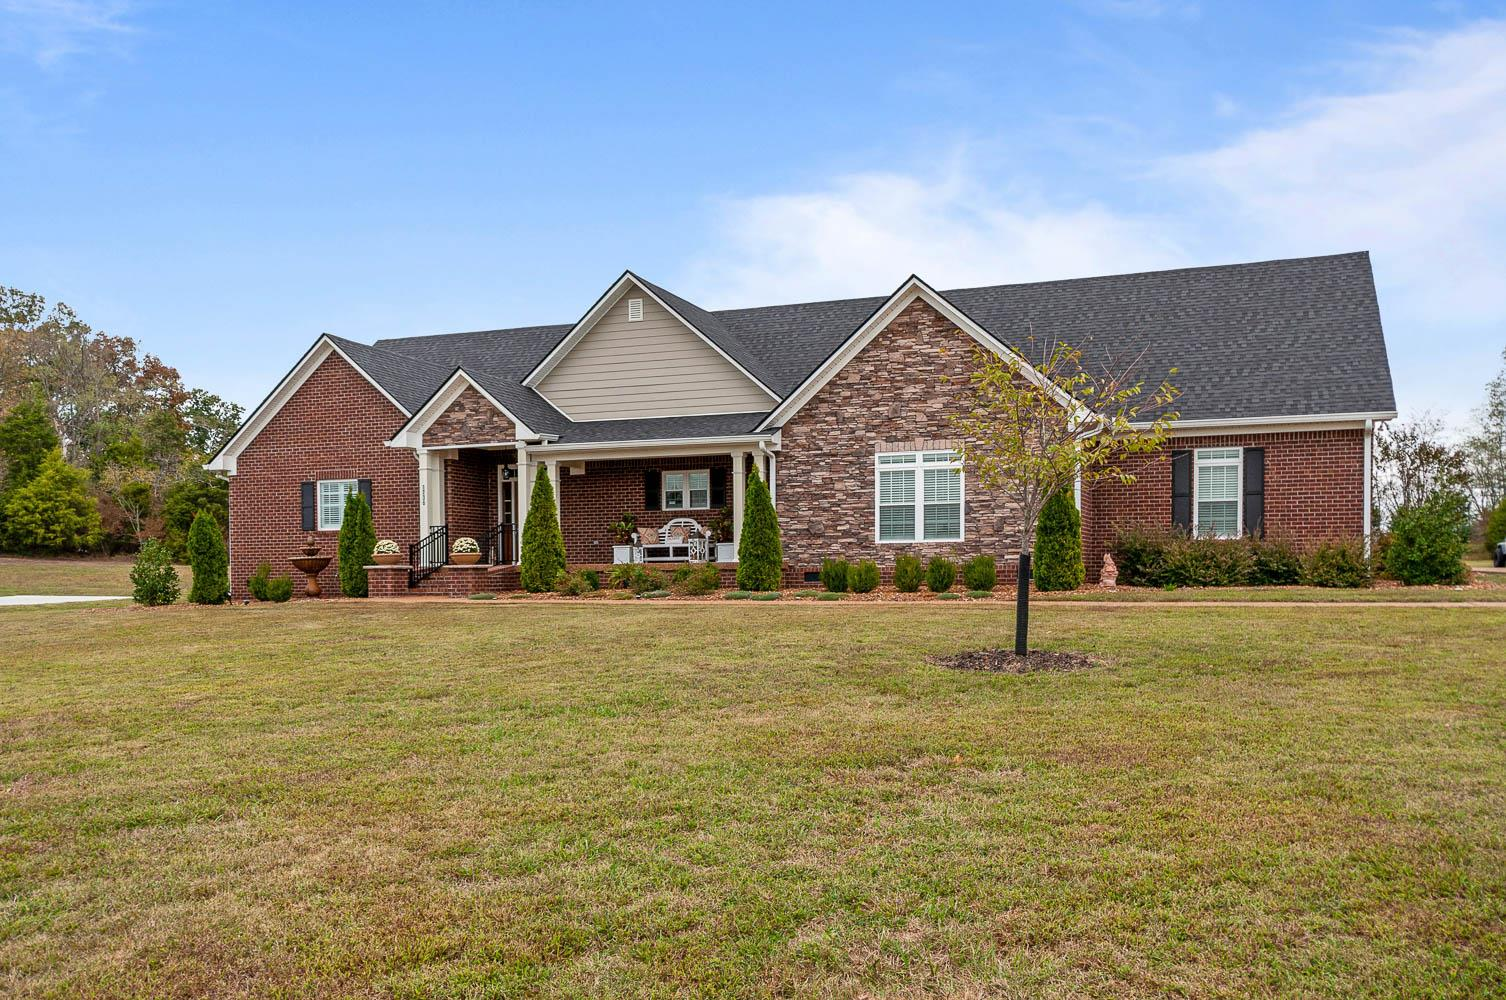 1736 Mayflower Dr, Columbia, Tennessee